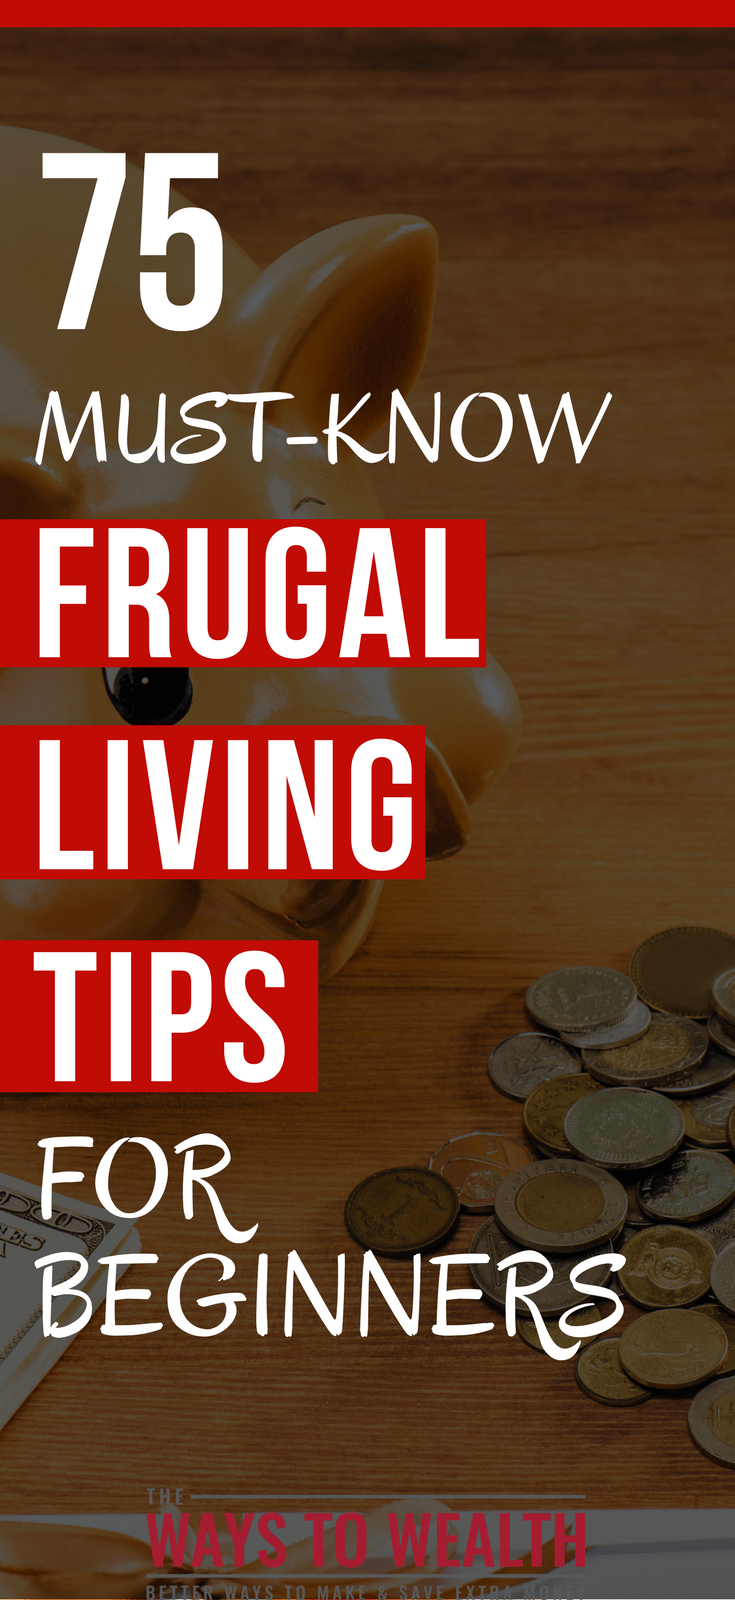 75 Must-Know Frugal Living Tips For Beginners The right tip at the right time can make a huge difference in your future. Here's 75 frugal living tips to optimize your finances. frugal living tips saving money | personal finance tips investing | financial planning for beginners tips #frugal #frugalliving #moneymanagement